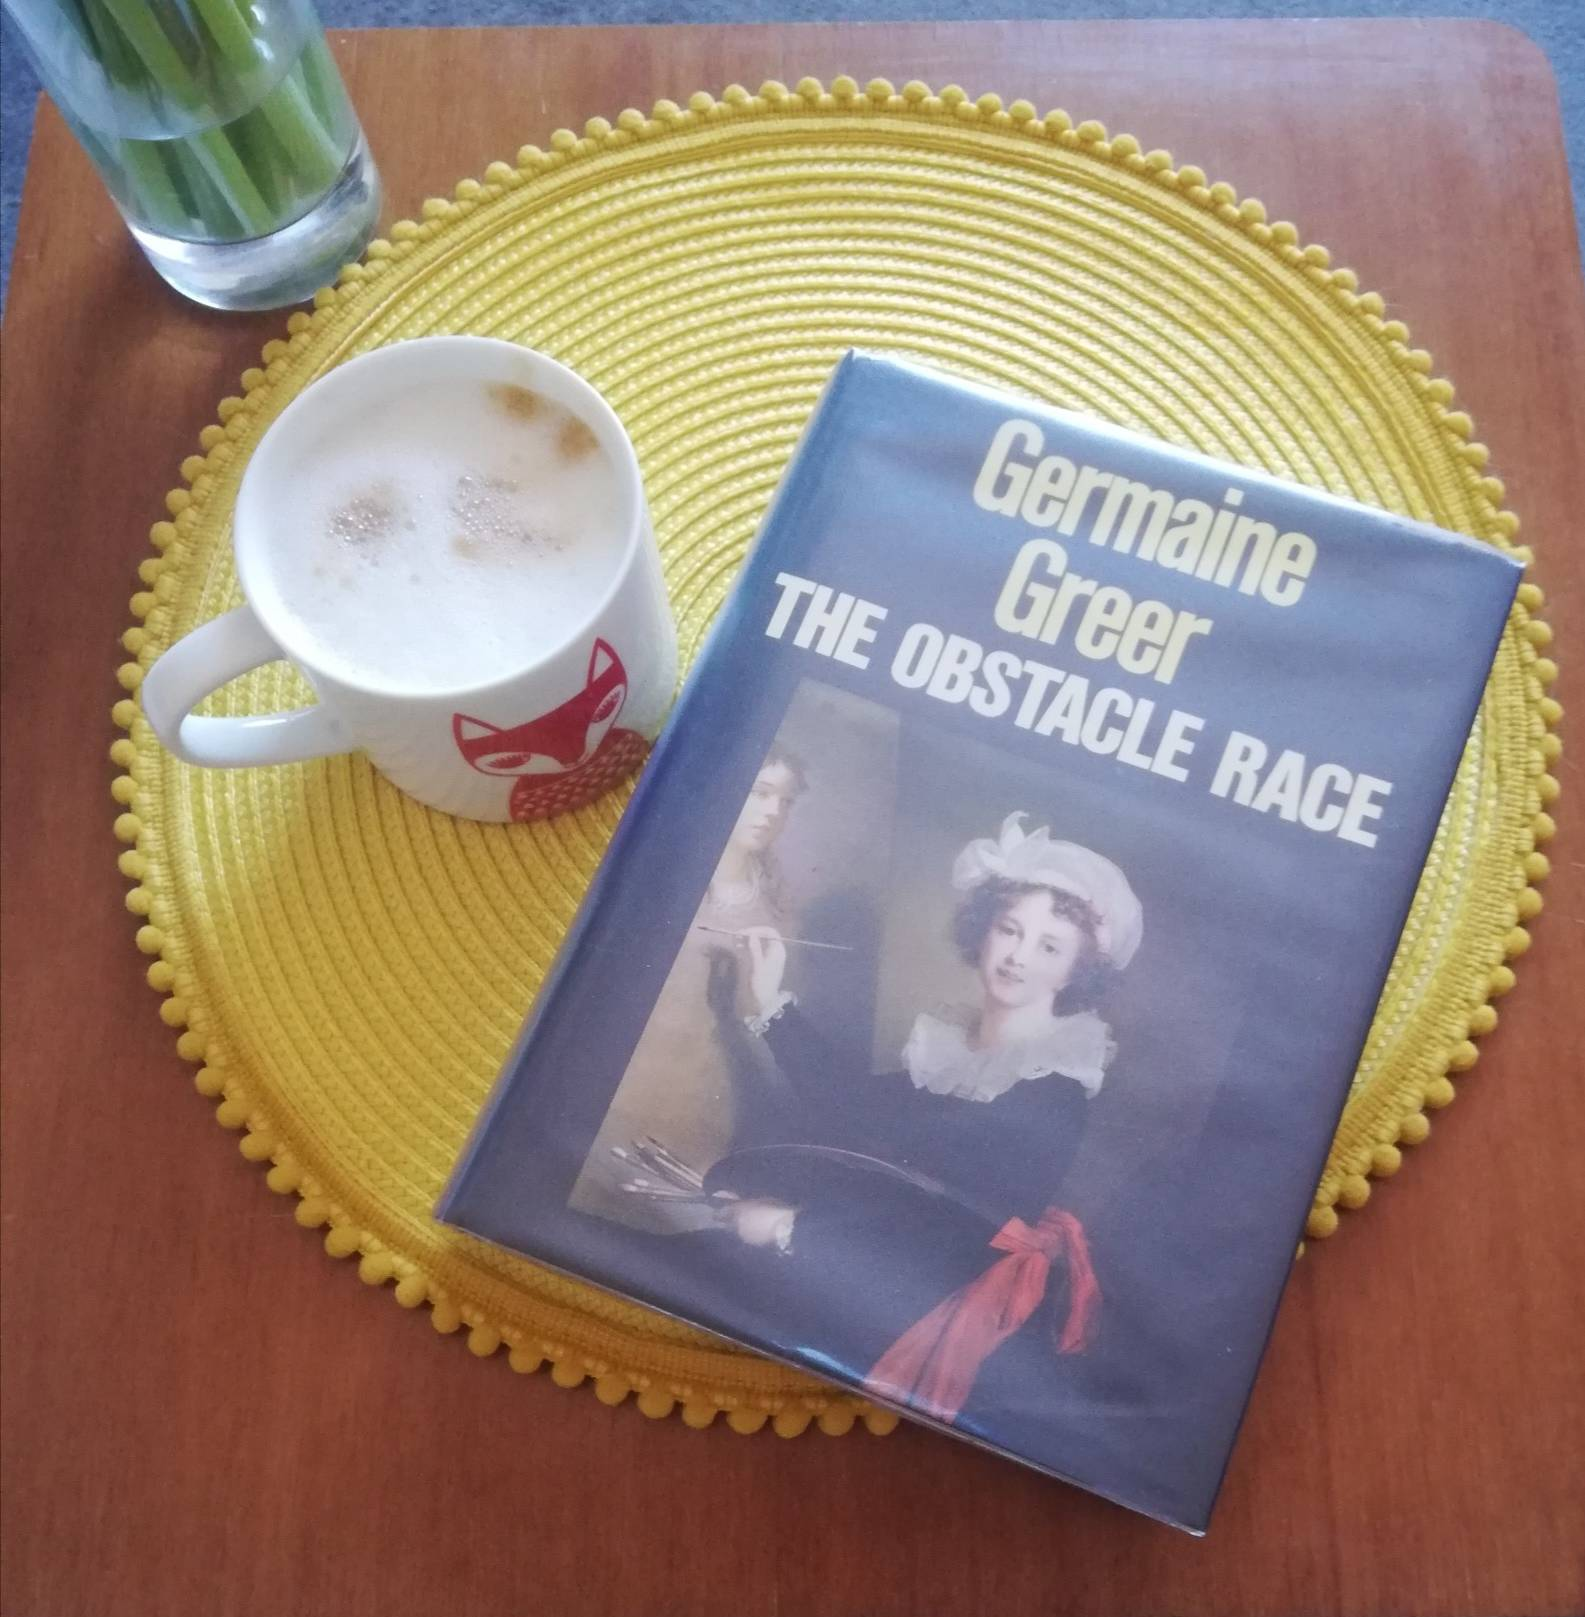 Photograph of the book by Germaine Greer - The Obstacle Race, with a cup of coffee.